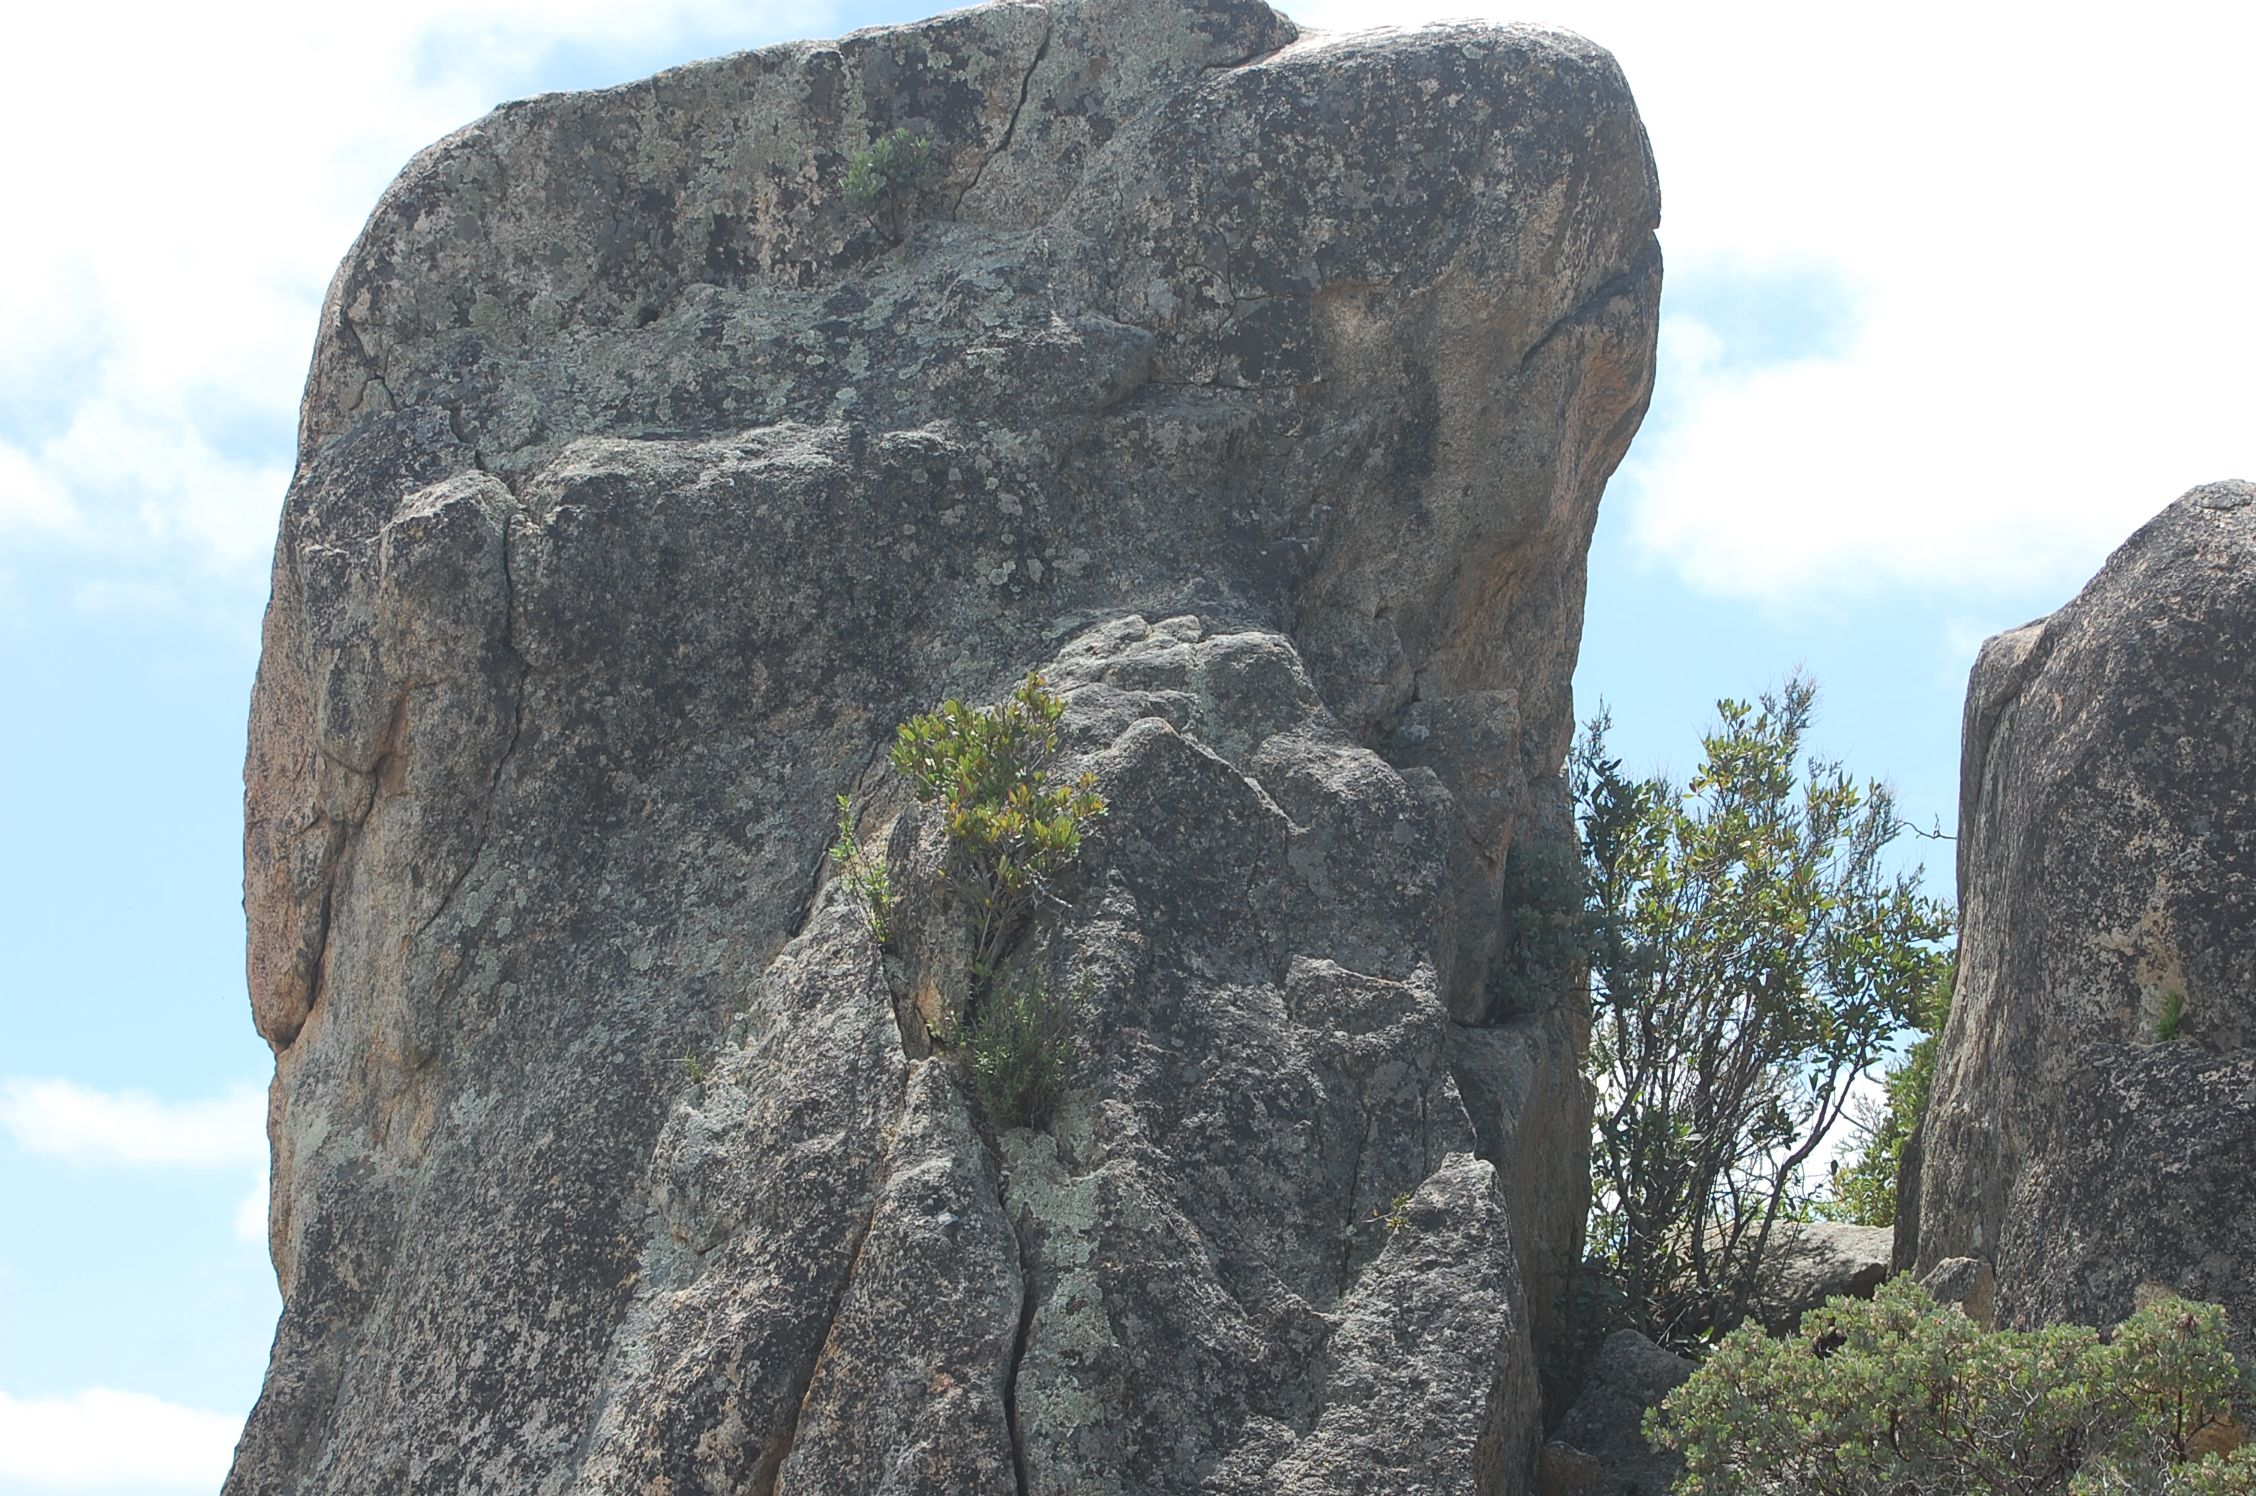 massive granite boulder up on the mountain--one of many at Cornbread Mesa Ranch